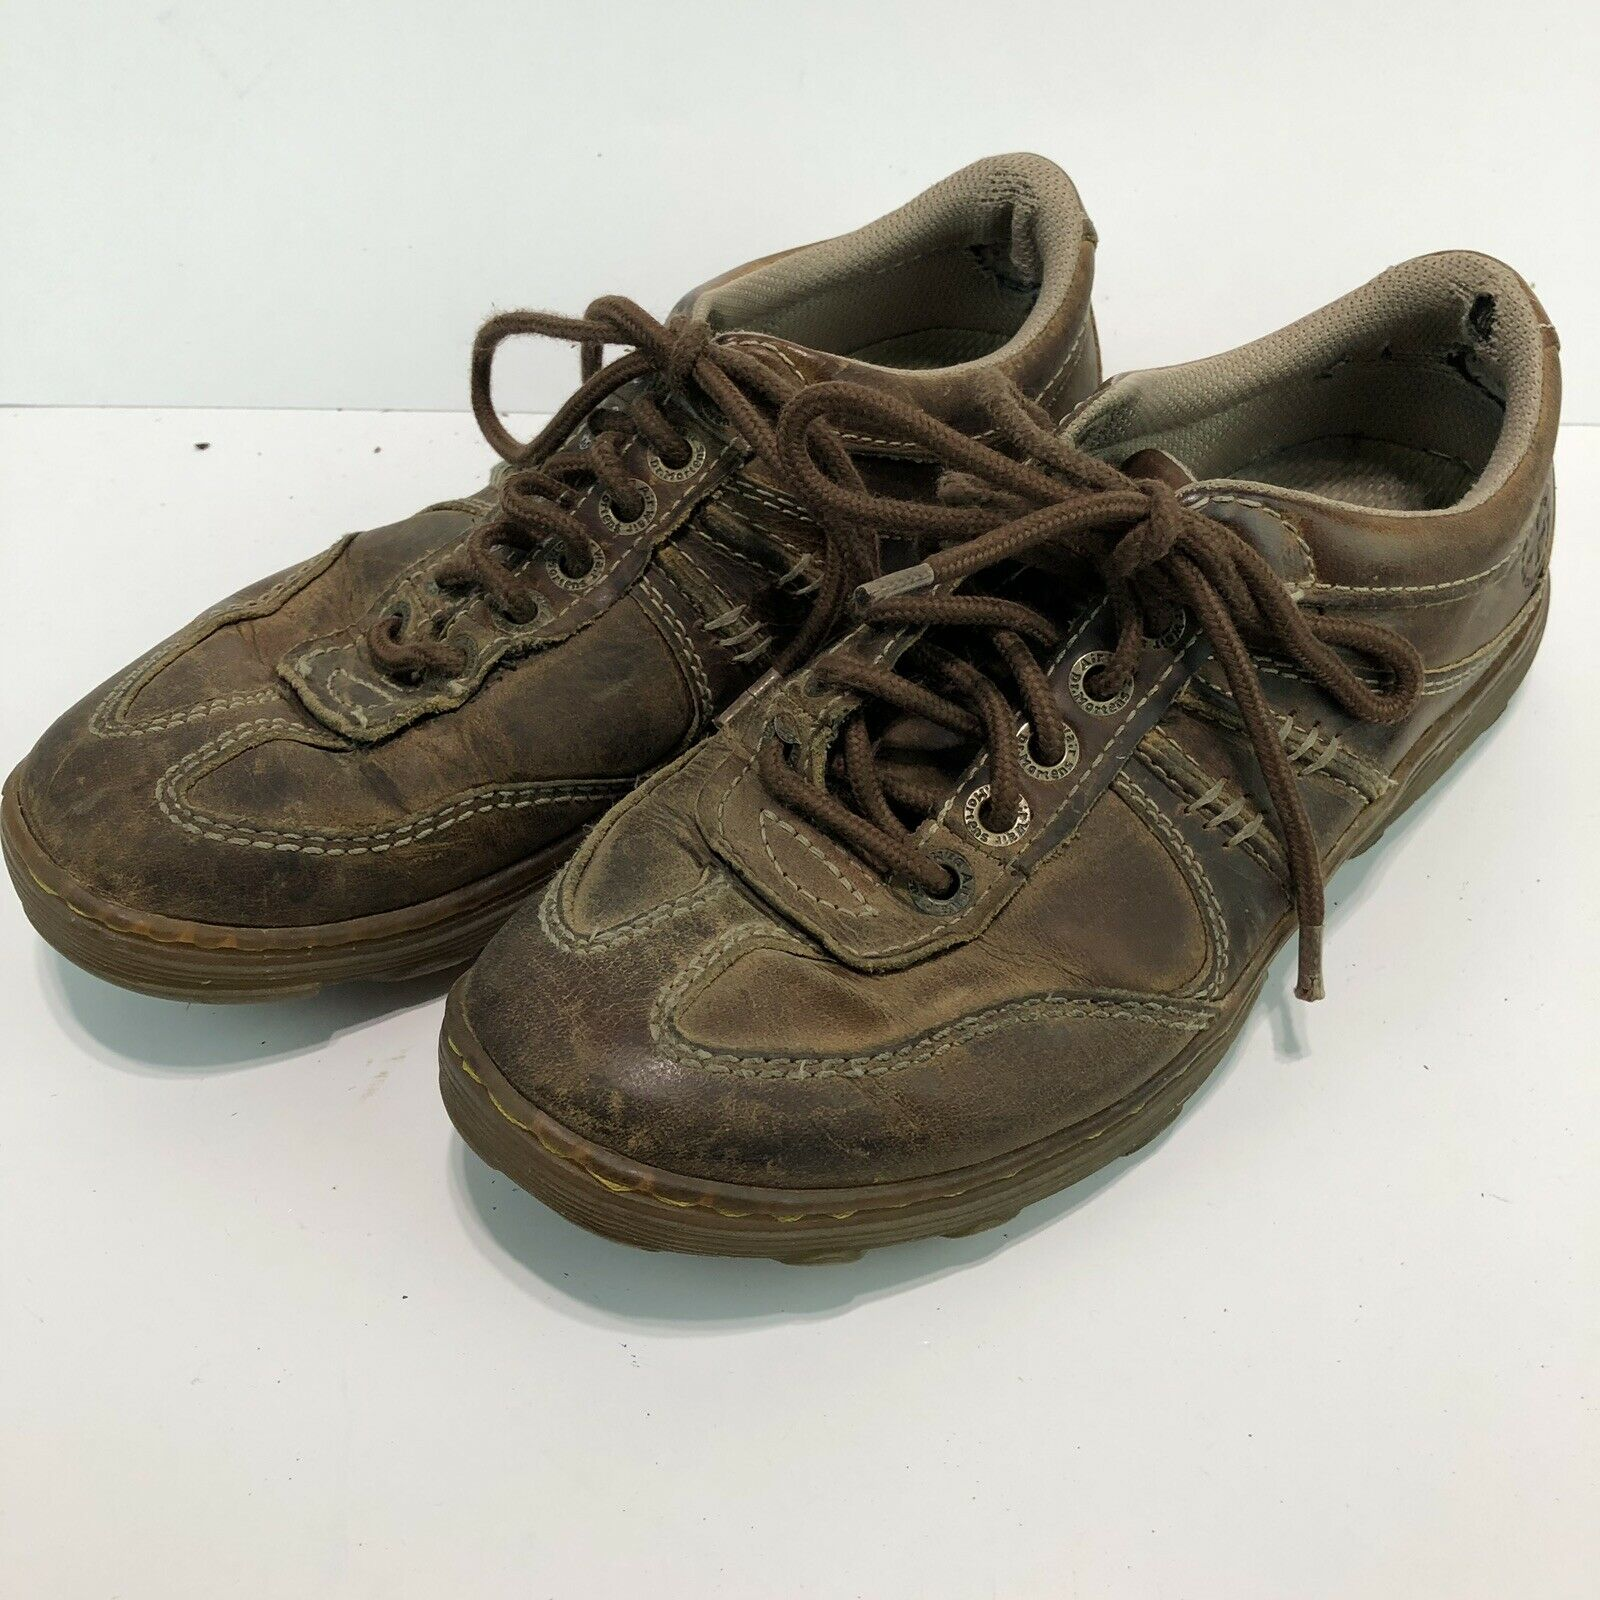 Dr Martens Kurt Oxford Sneakers Mens Size 7 Womens 8 Brown Leather Shoes SH8